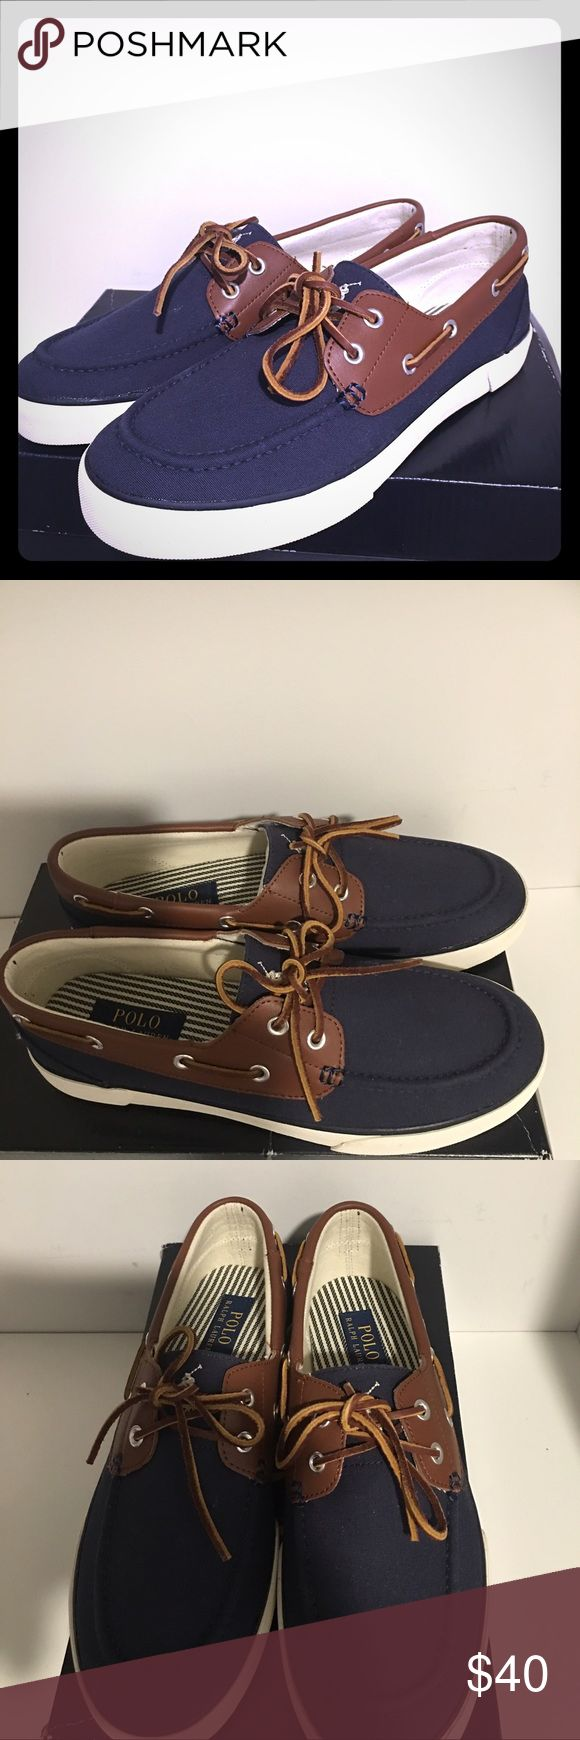 MEN'S, NEW POLO RALPH LAUREN BOAT SHOES NEW, NAVY RYLANDER CANVAS/ LEATHER BOAT SHOE Polo by Ralph Lauren Shoes Boat Shoes